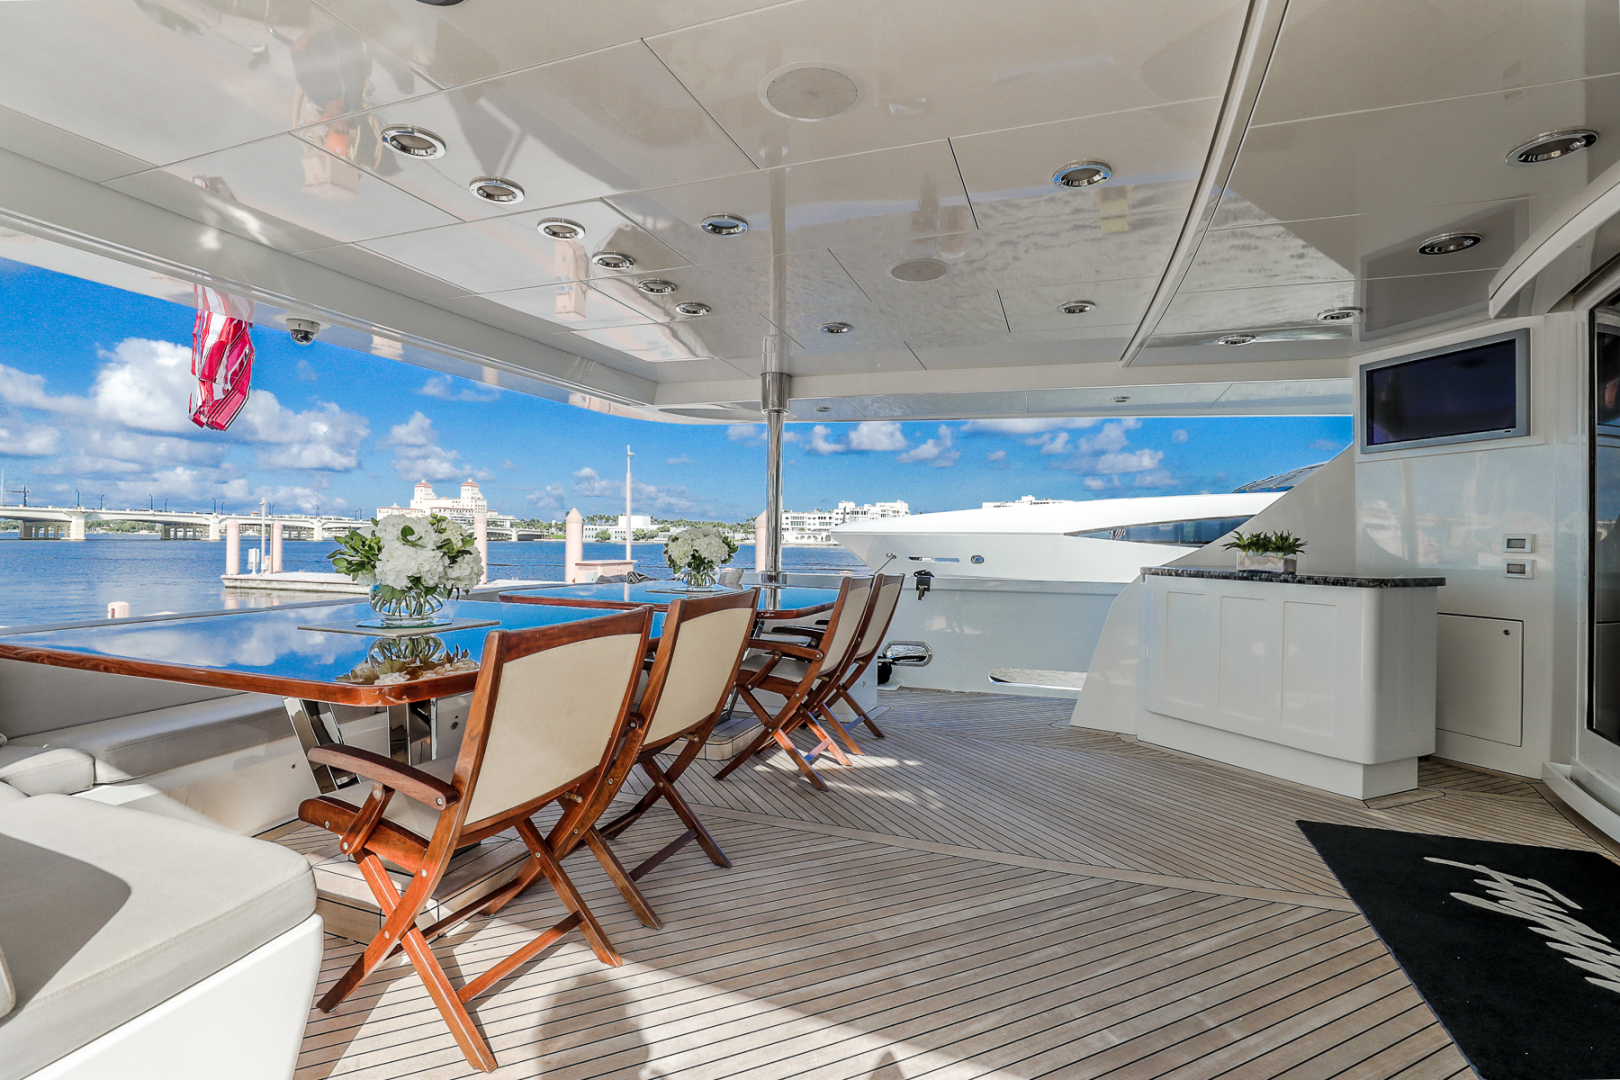 Northcoast-NC125 2011-FUGITIVE *Name Reserved* West Palm Beach-Florida-United States-Aft Deck-1513497 | Thumbnail